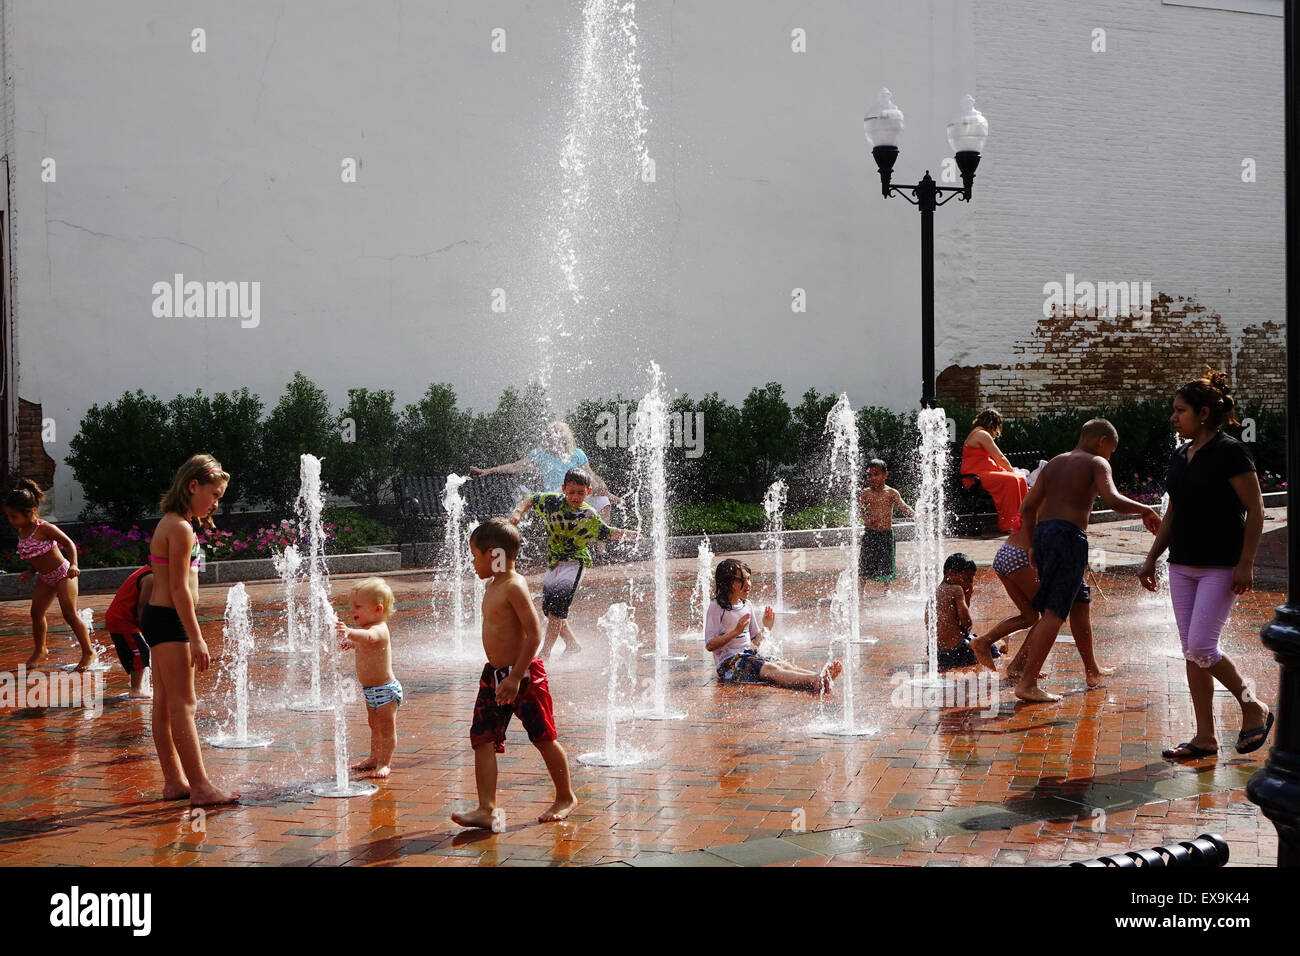 Water fountains virginia - Children Enjoying An Outdoor Fountain On A Hot Summer Day In Old Town Winchester Virginia